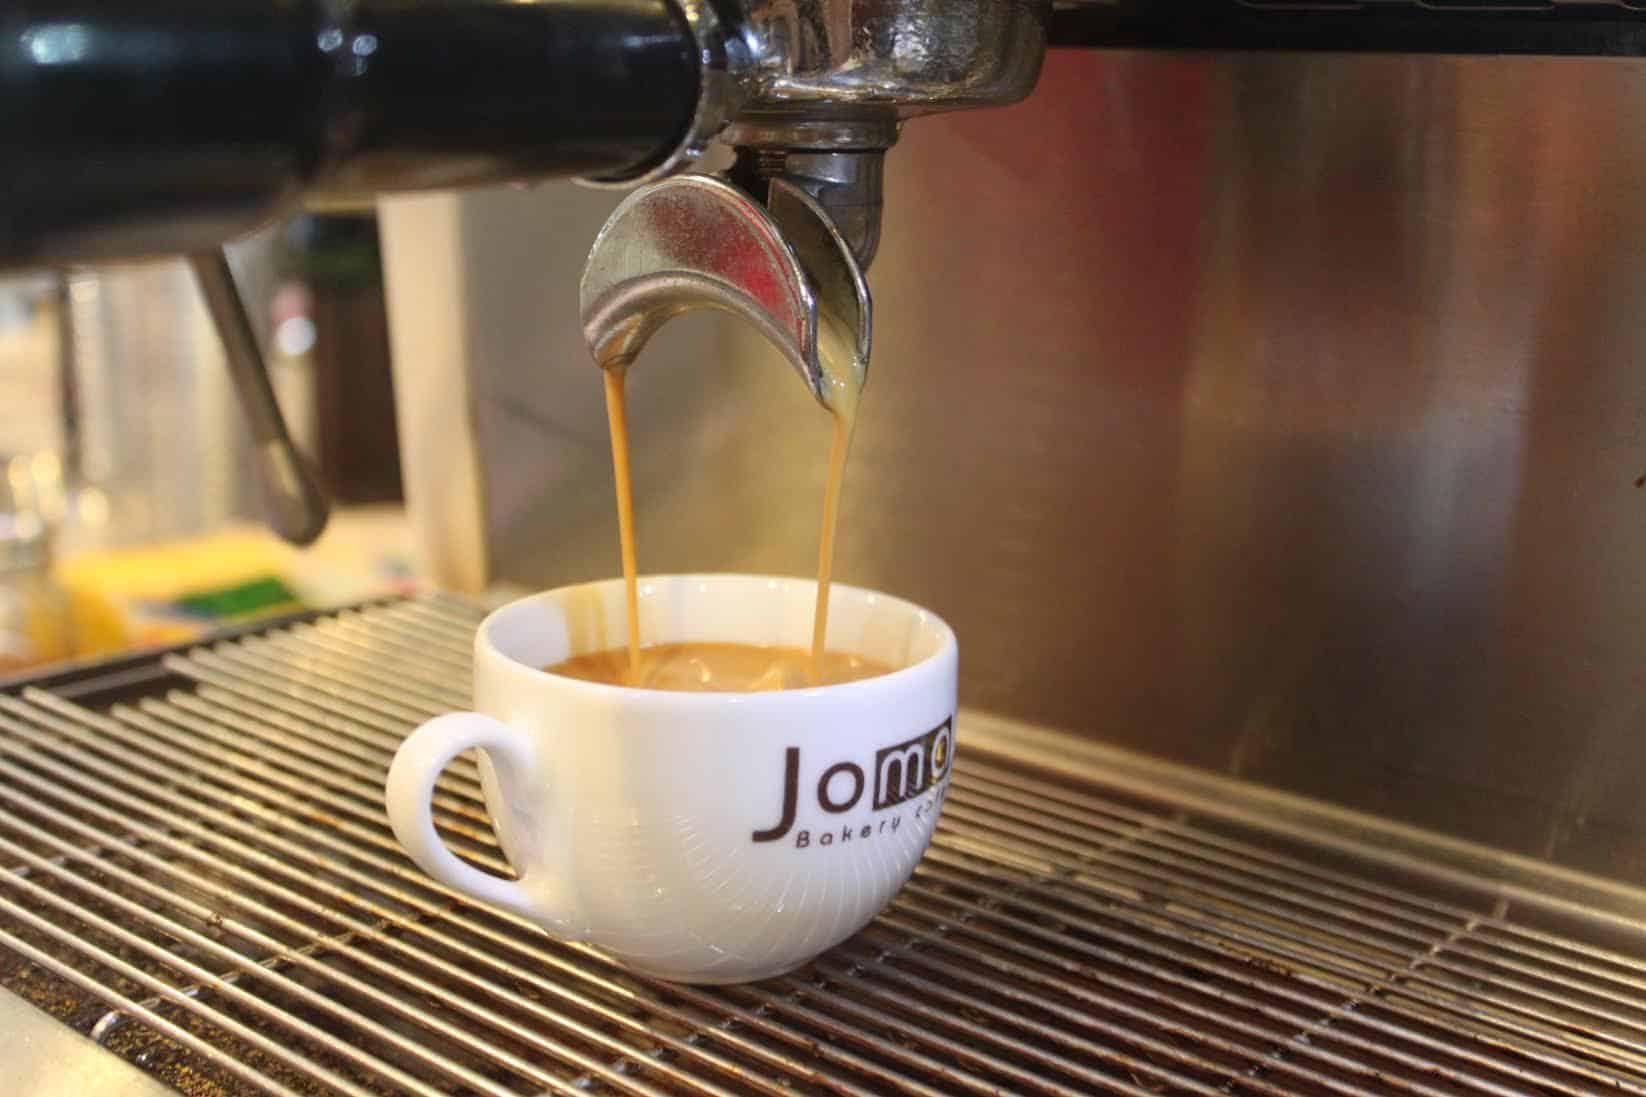 A fresh coffee at Joma Bakery in Luang Prabang, Laos.